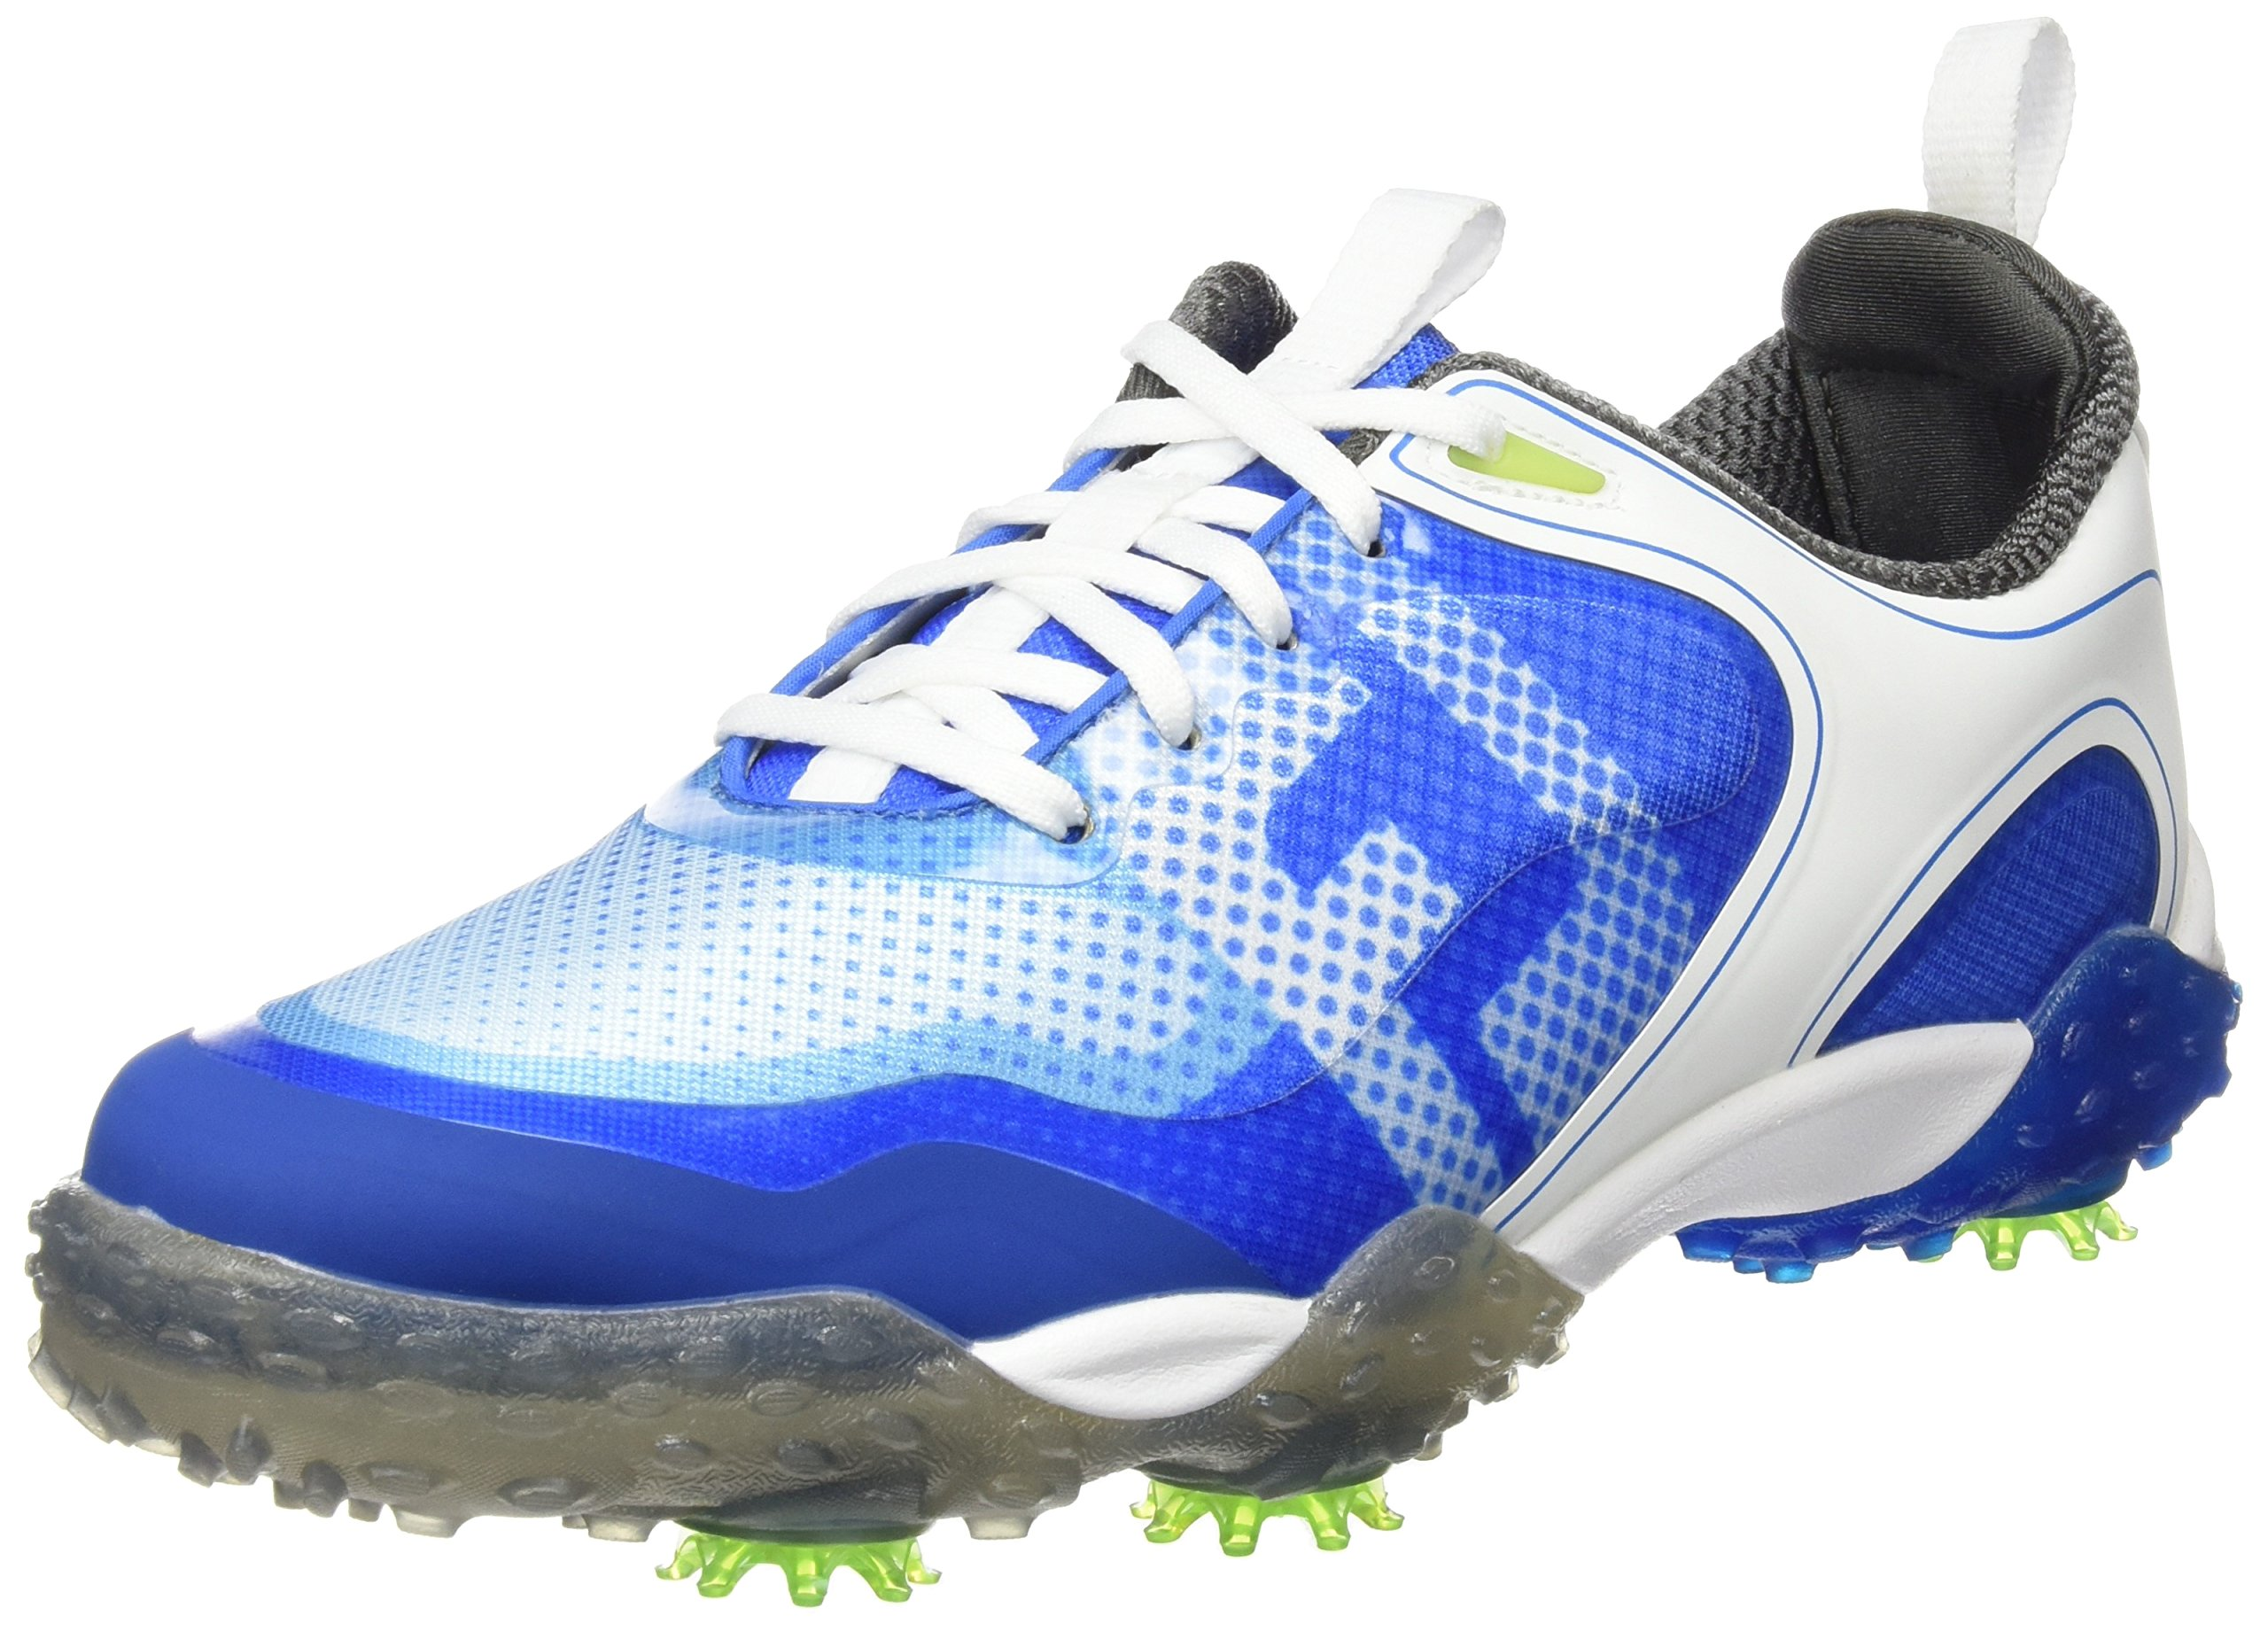 FootJoy Men's Freestyle Golf Shoes Saddle White/Electric Blue Size 11.5 M US by FootJoy